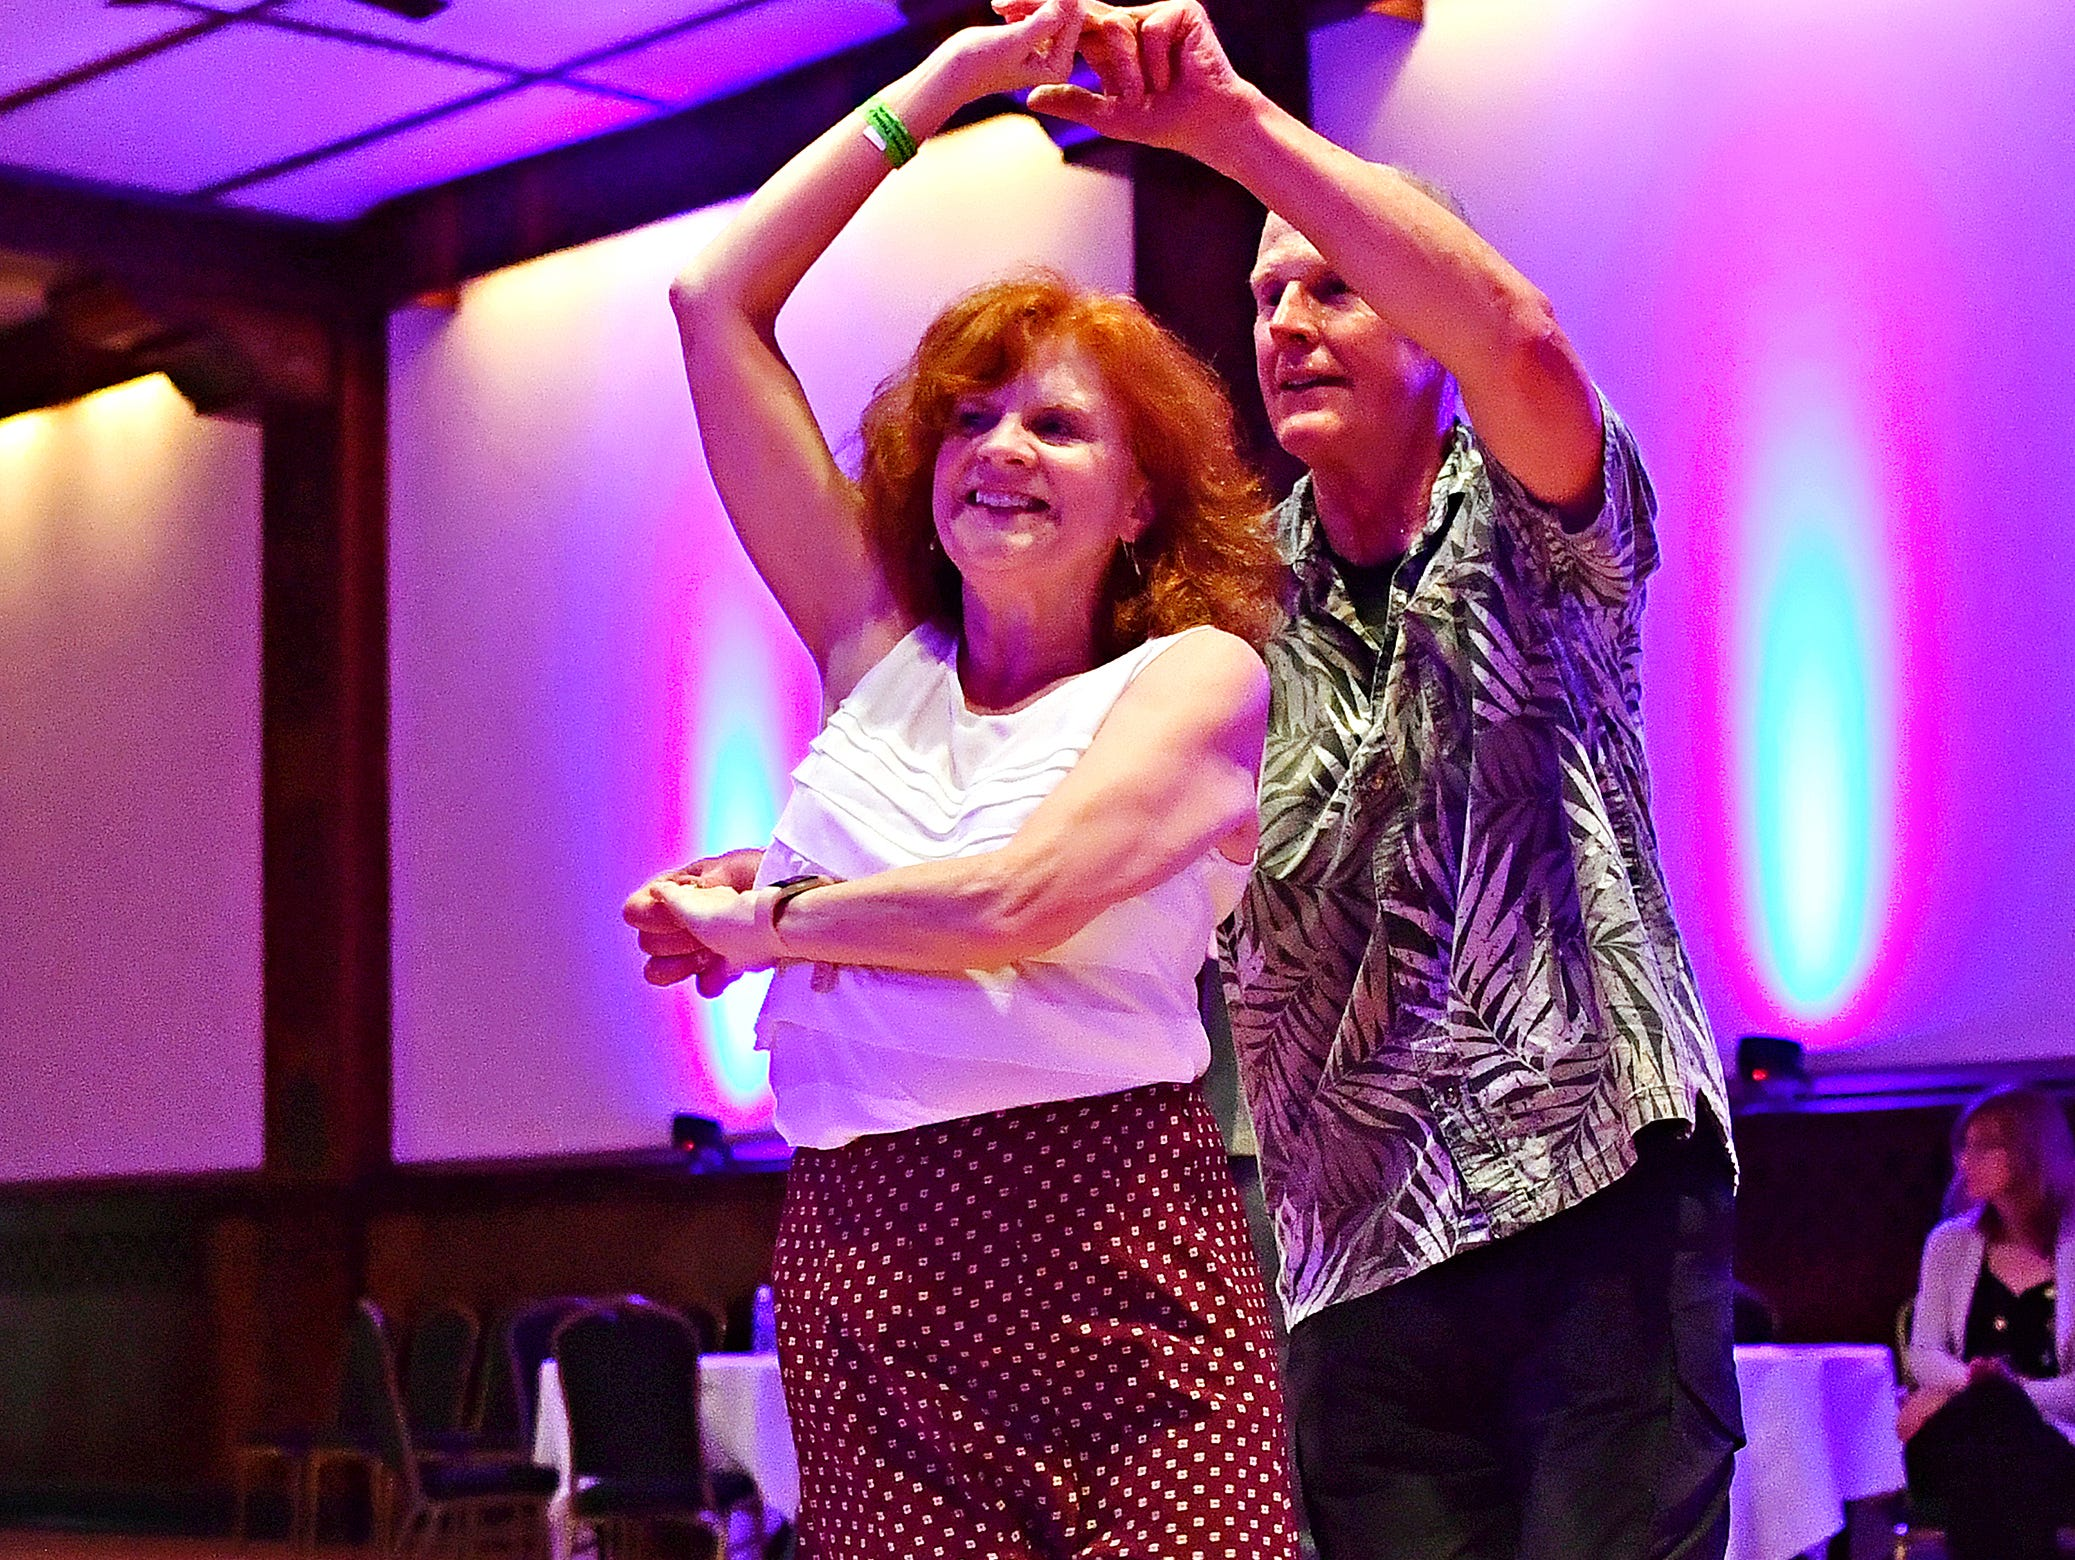 Ellen and Steve Nichols, of Winchester, Va., dance as Parlour Noir performs during Big Swing Thing III Premiere Swing Music & Dance Festival at Valencia Ballroom in York City, Friday, April 12, 2019. Dawn J. Sagert photo